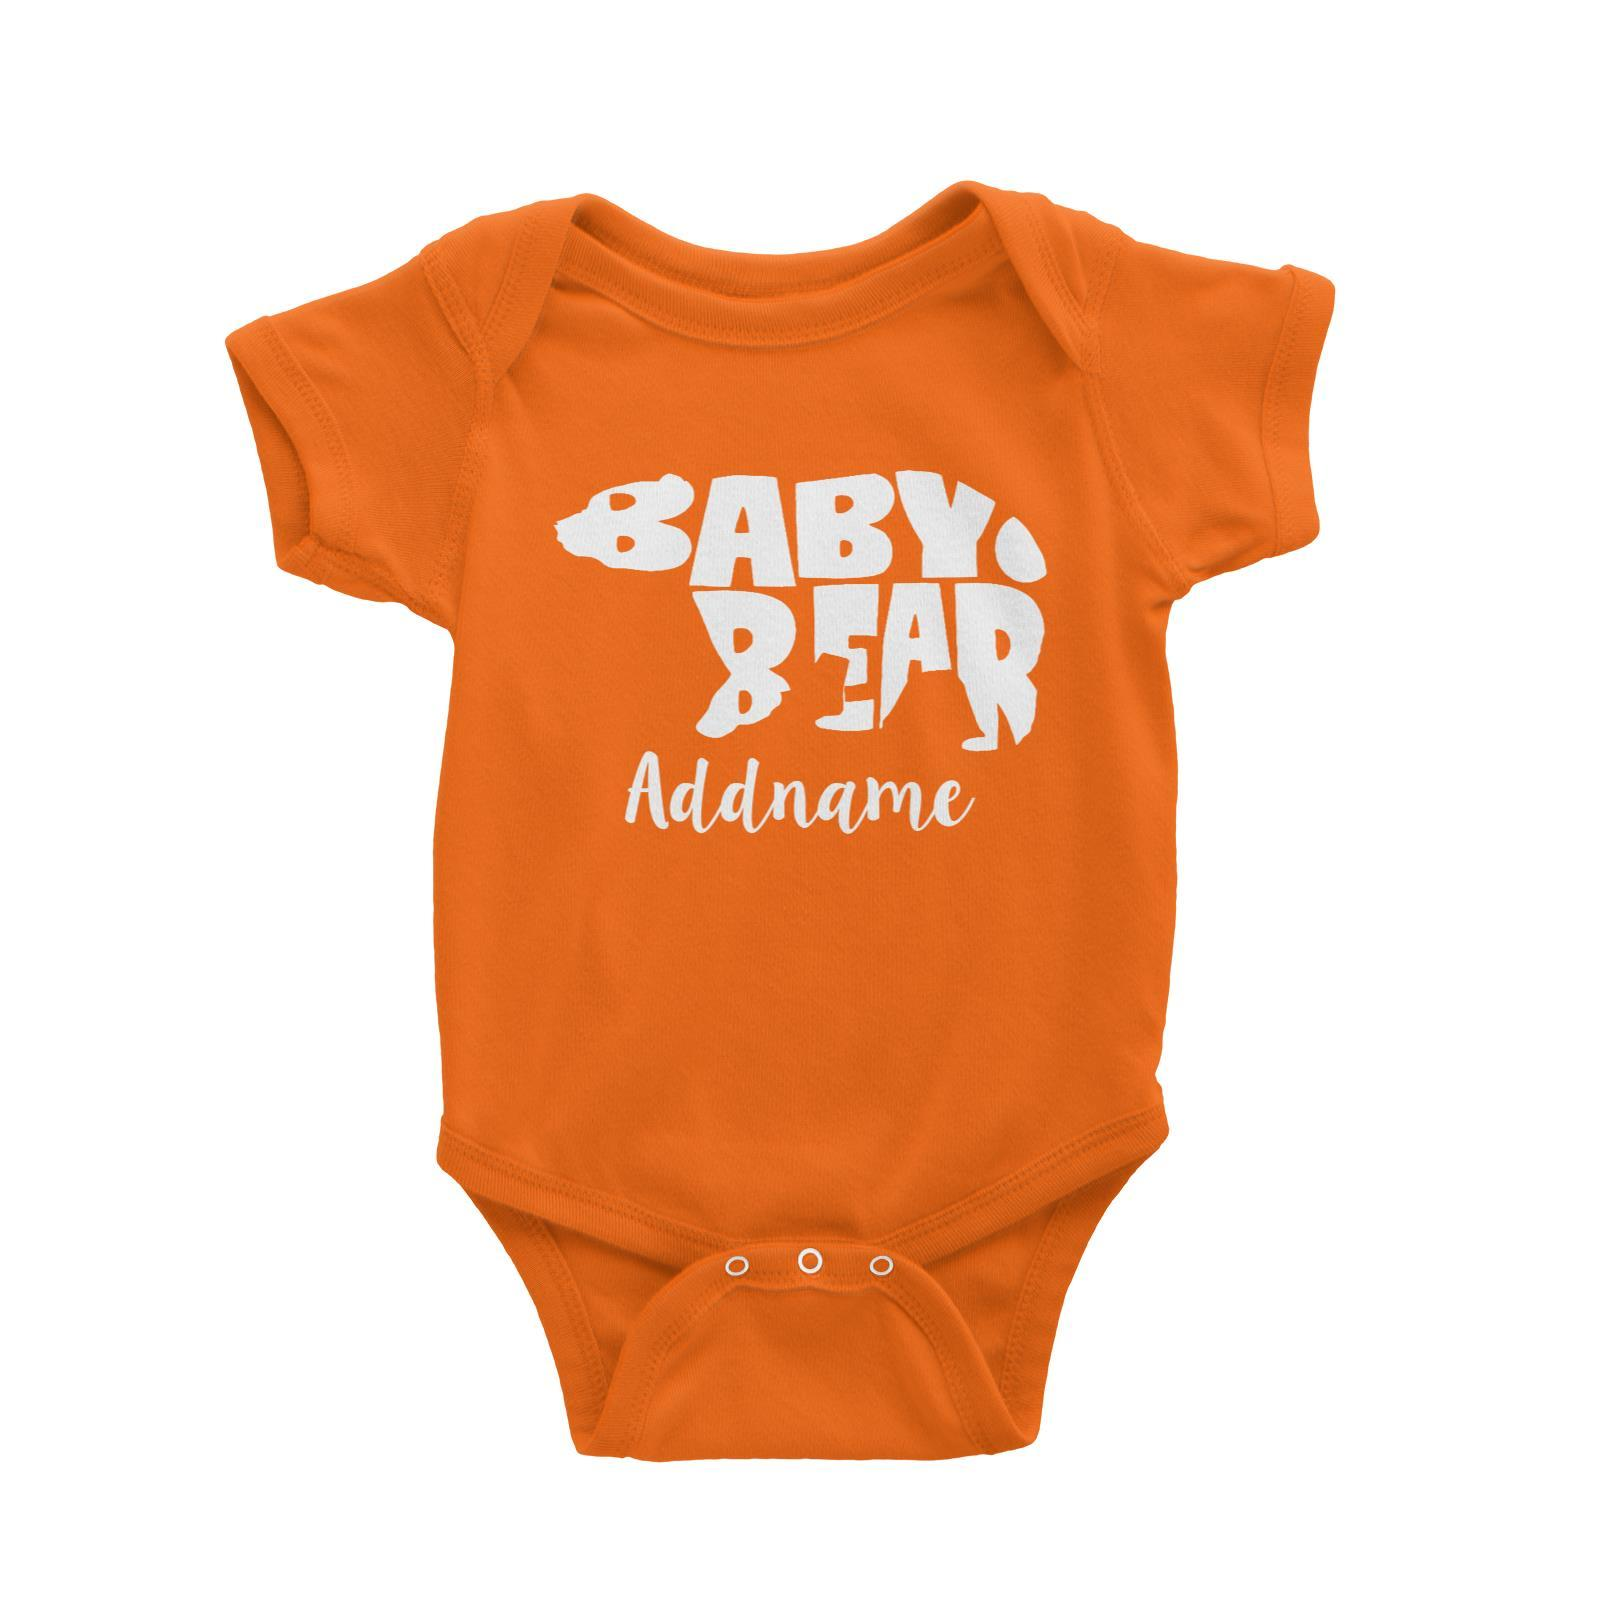 1600x1600 Baby Bear Silhouette Addname Baby Romper Matching Family